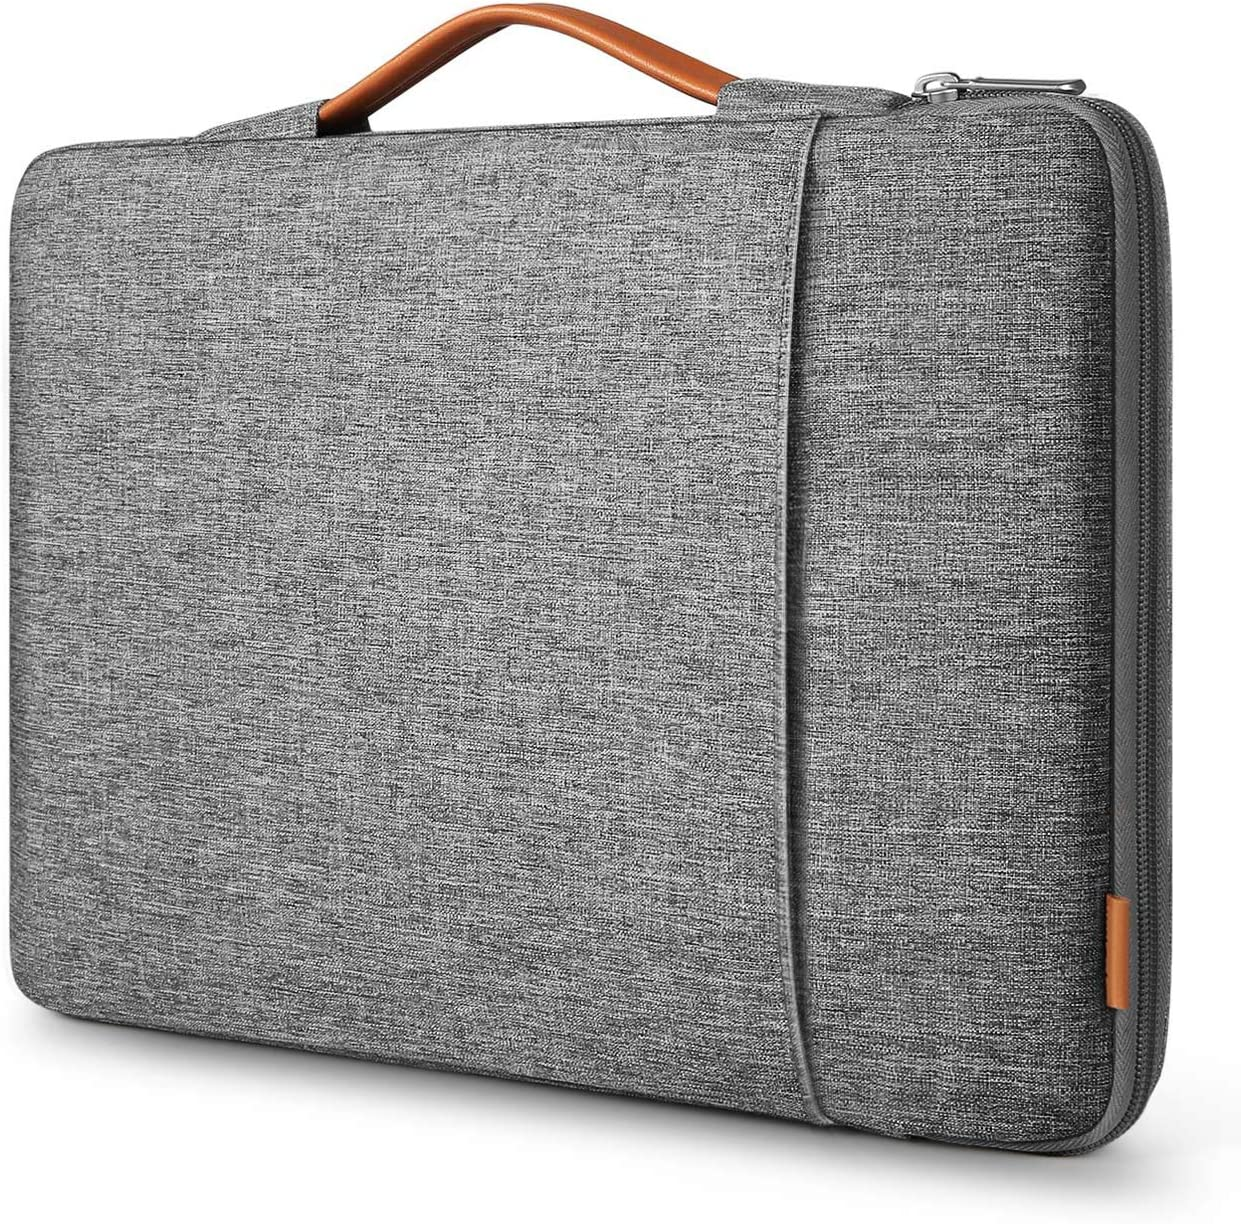 Inateck 14 Inch 360 Protection Shockproof Laptop Sleeve Carrying Case Bag Briefcase Compatible with 14 HP/Lenovo/Acer/ASUS/Dell Laptops Chromebooks Ultrabooks Netbooks